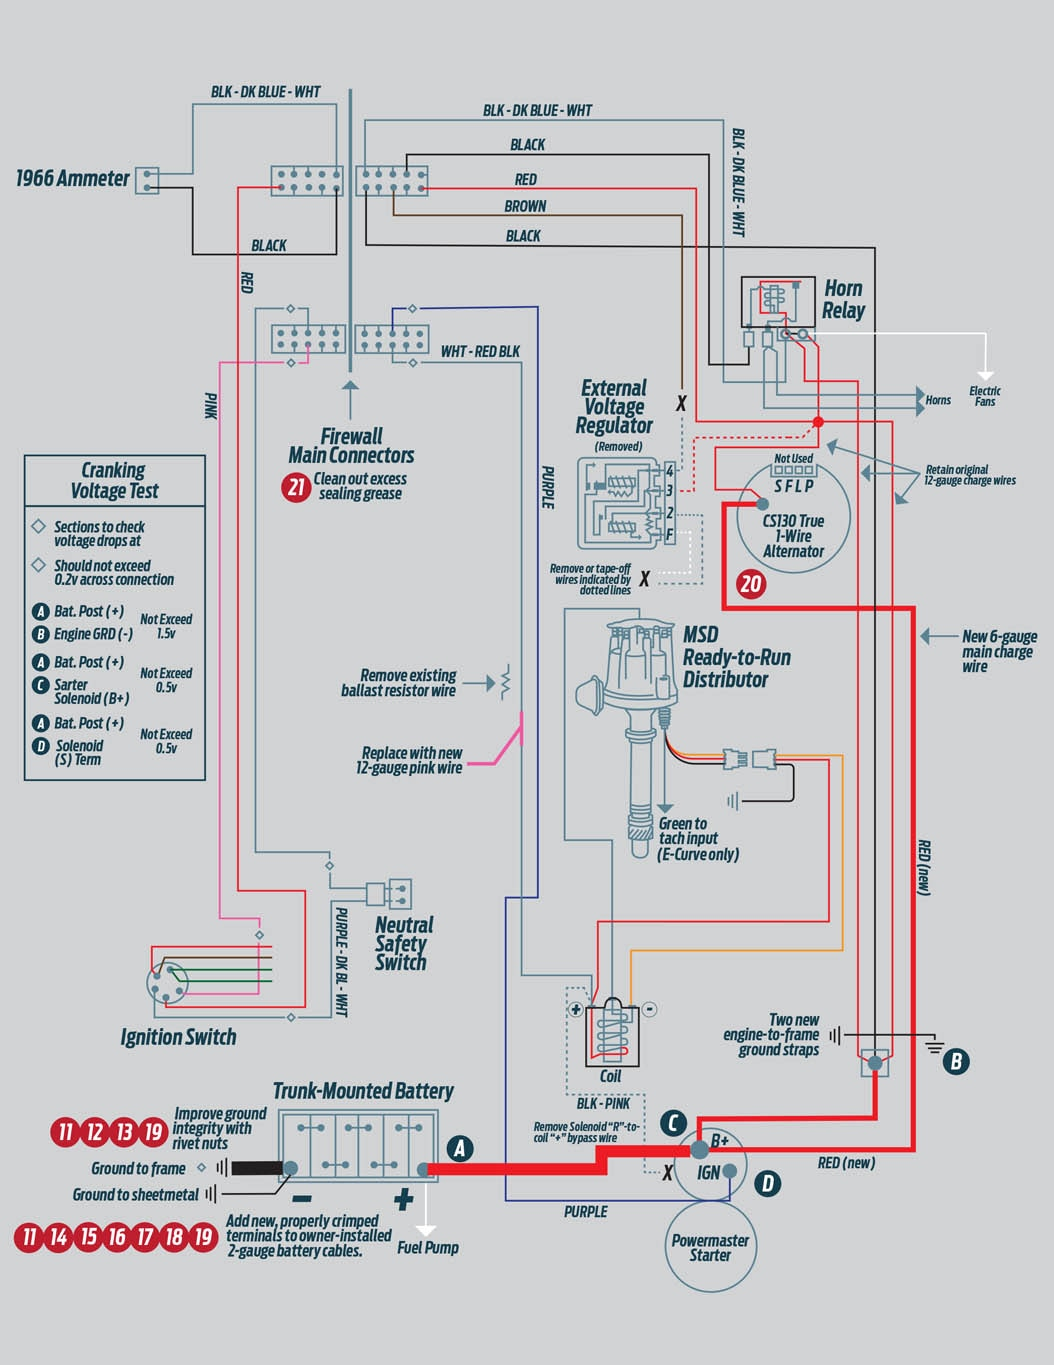 summit racing gm ignition switch wiring diagram circuit diagram gm neutral safety switch wiring summit racing [ 1054 x 1365 Pixel ]